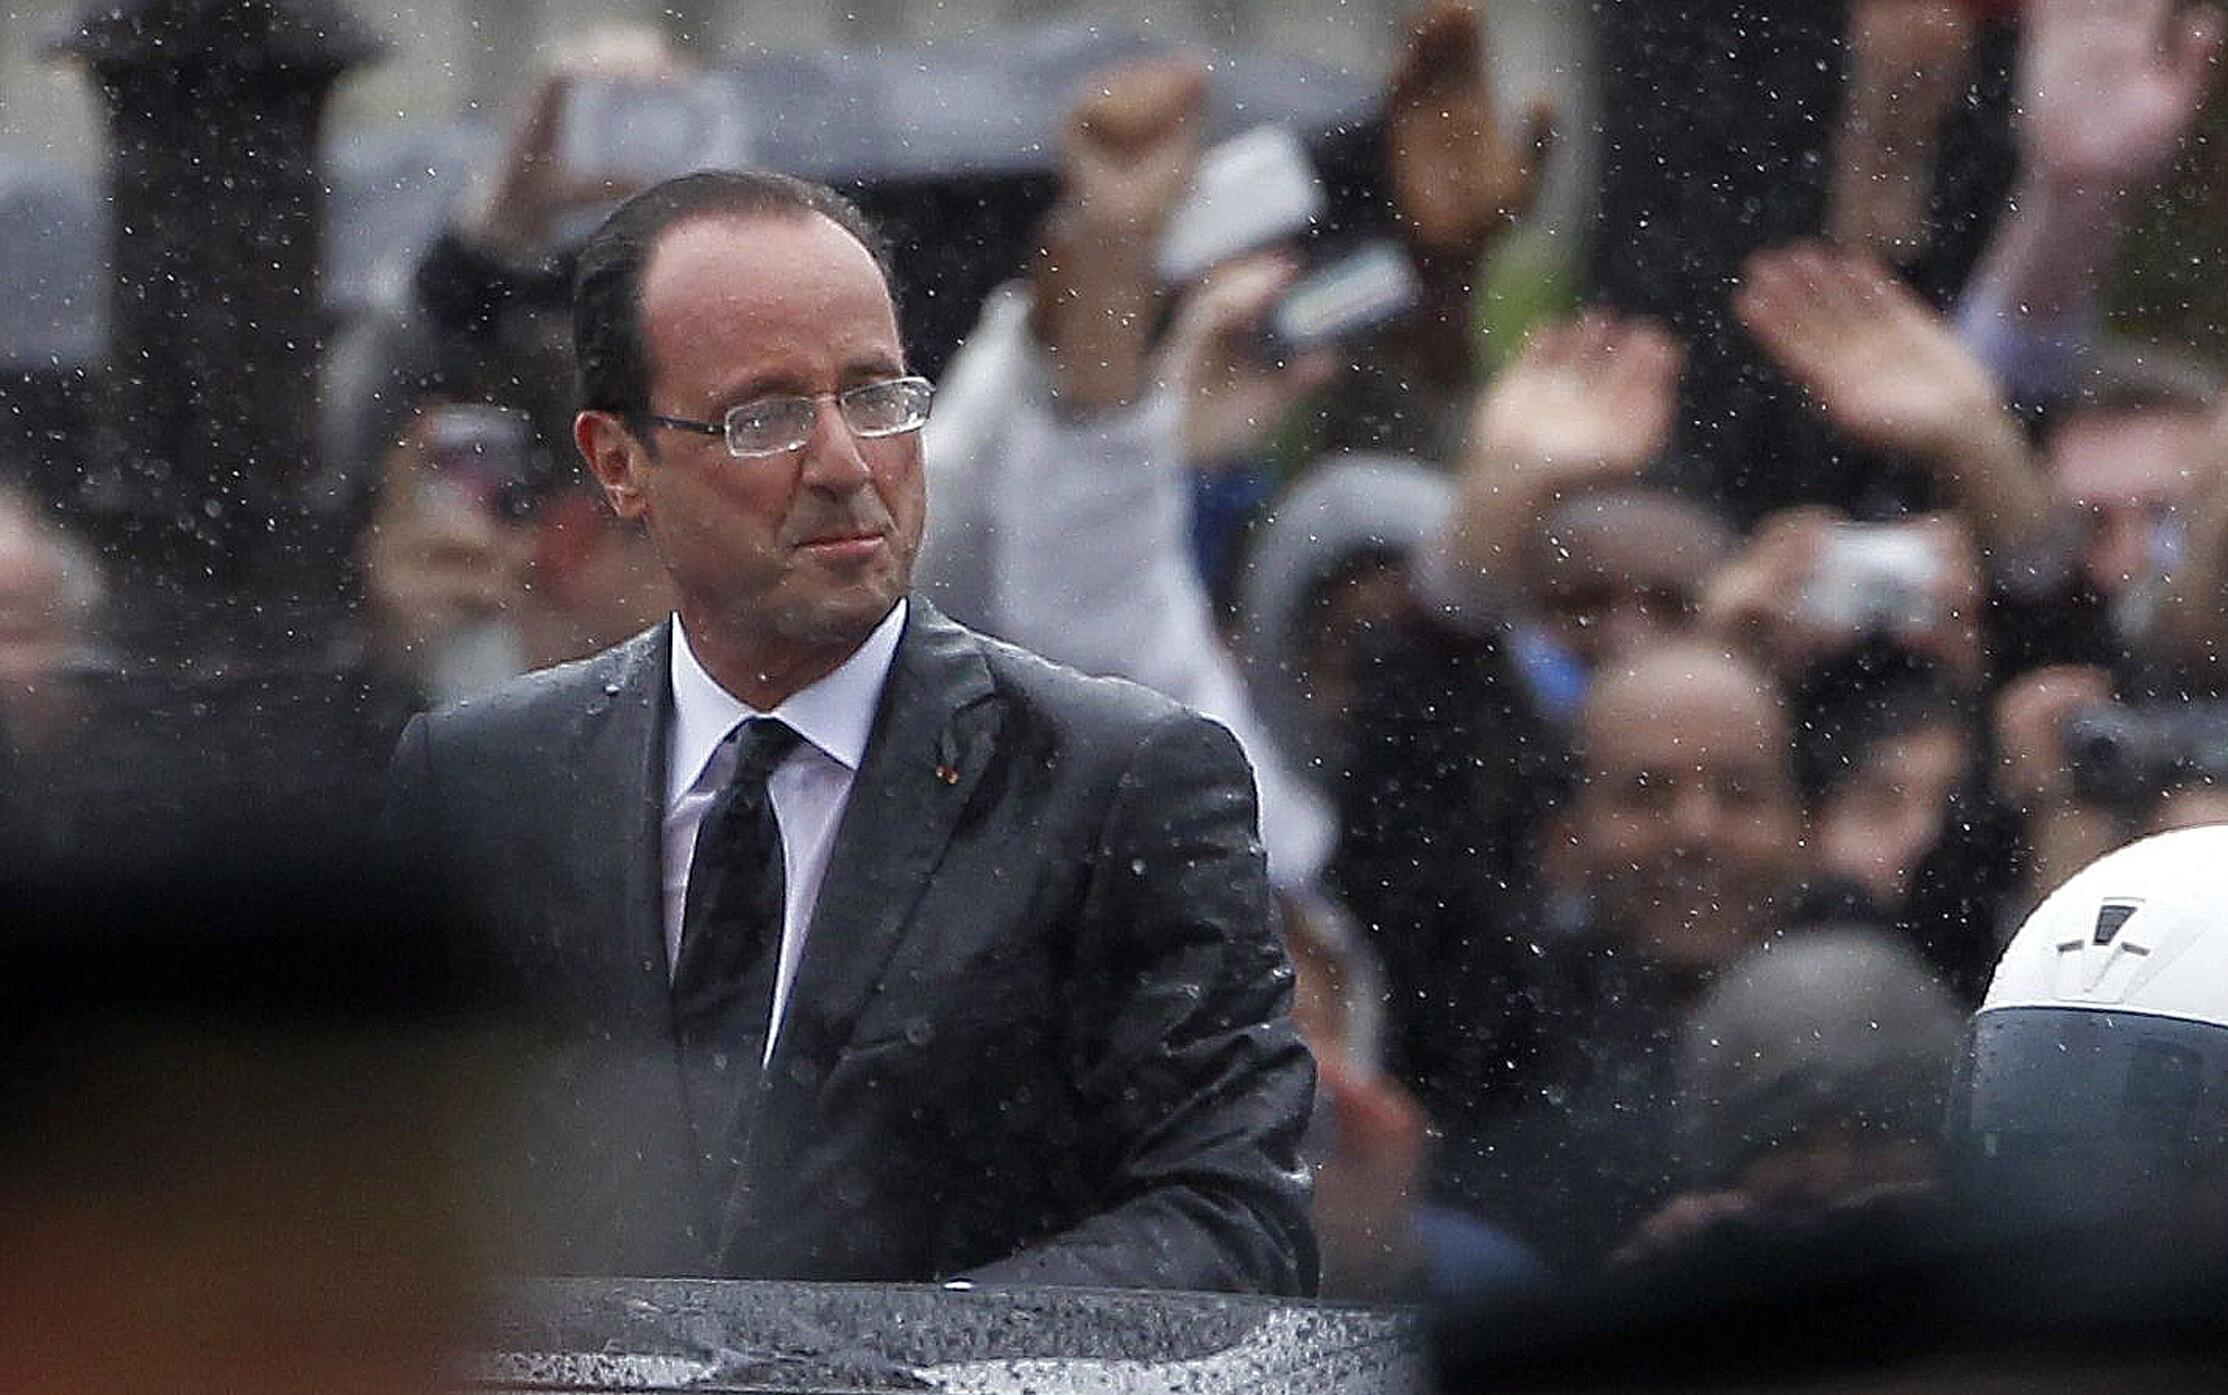 François Hollande has earned the nickname Rainman after the weather put a damper on his investiture